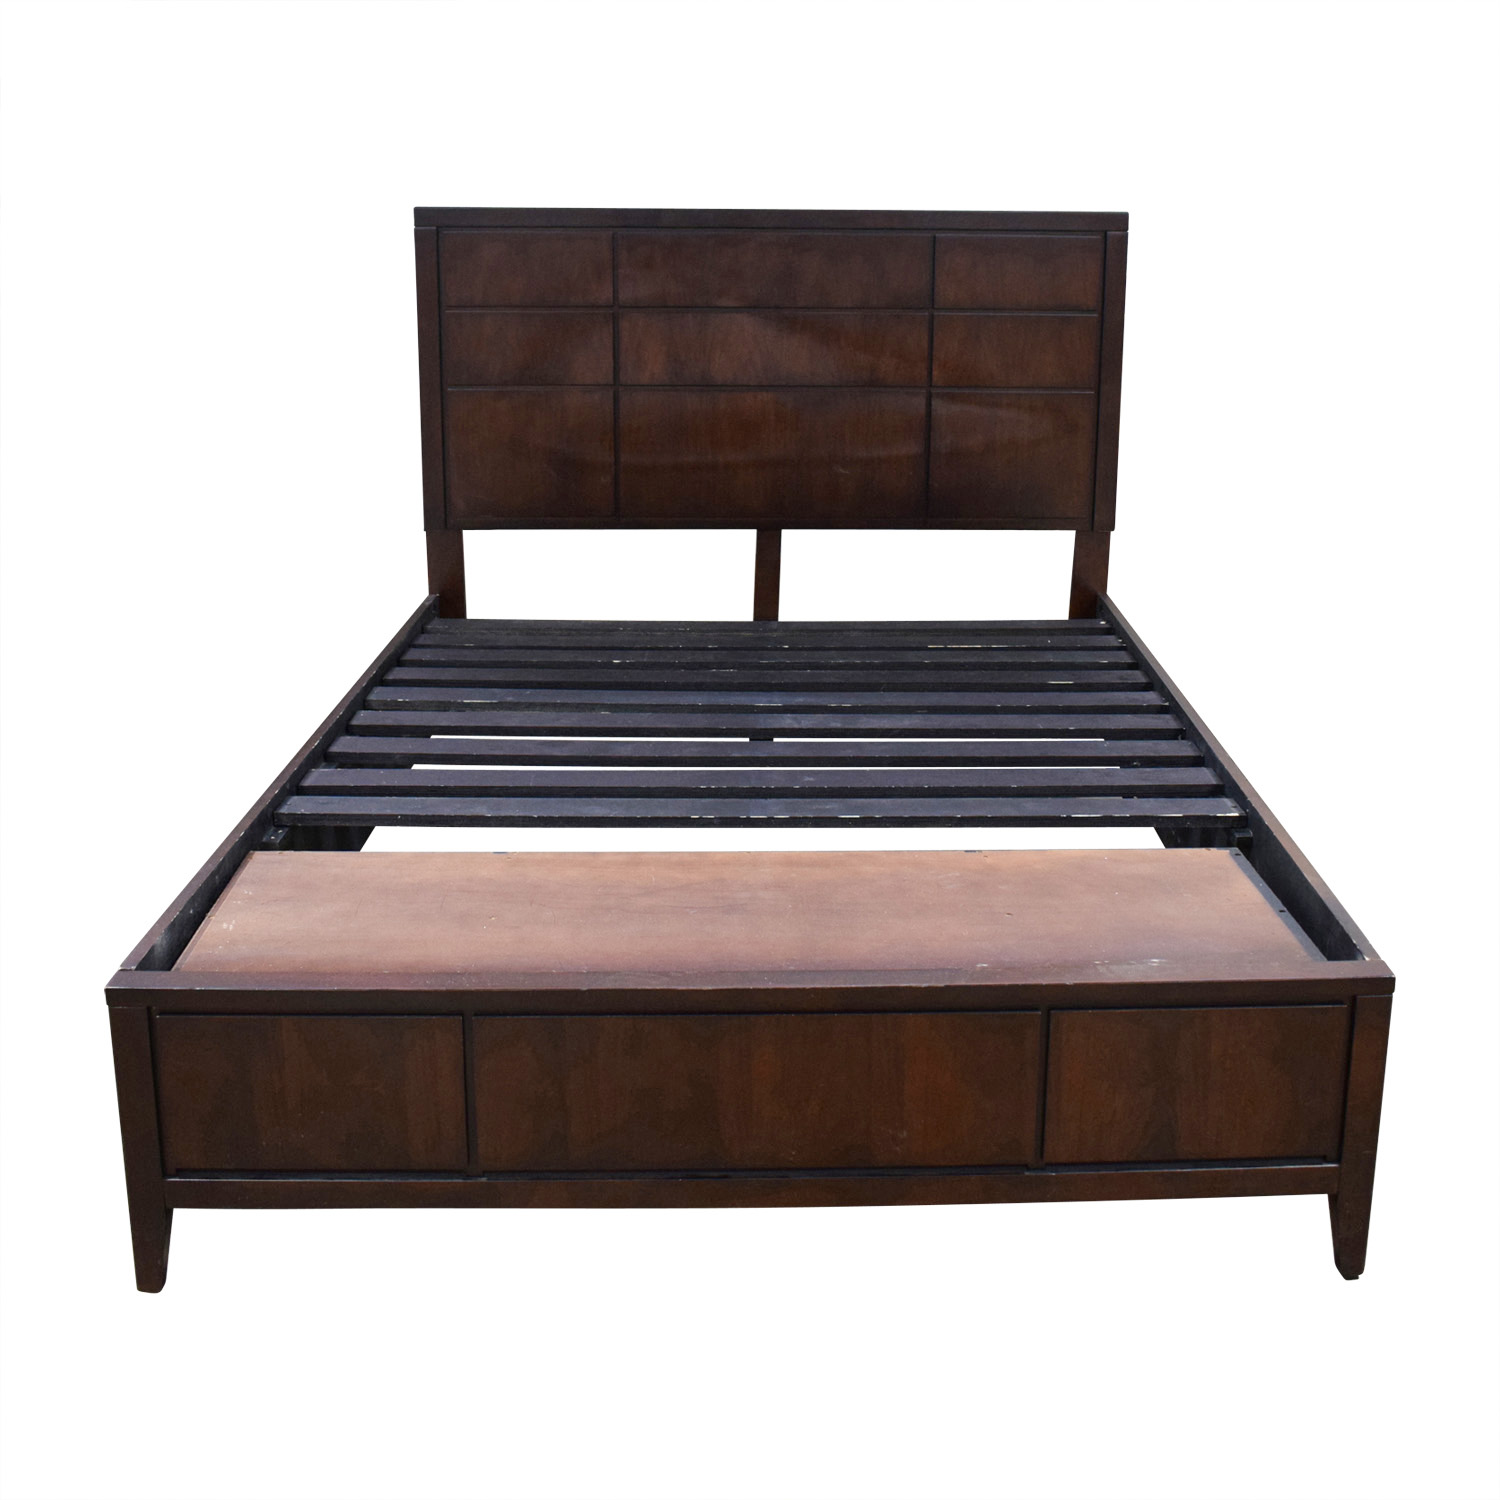 shop Raymour & Flanigan Platform Queen Size Bed Frame with Storage Raymour & Flanigan